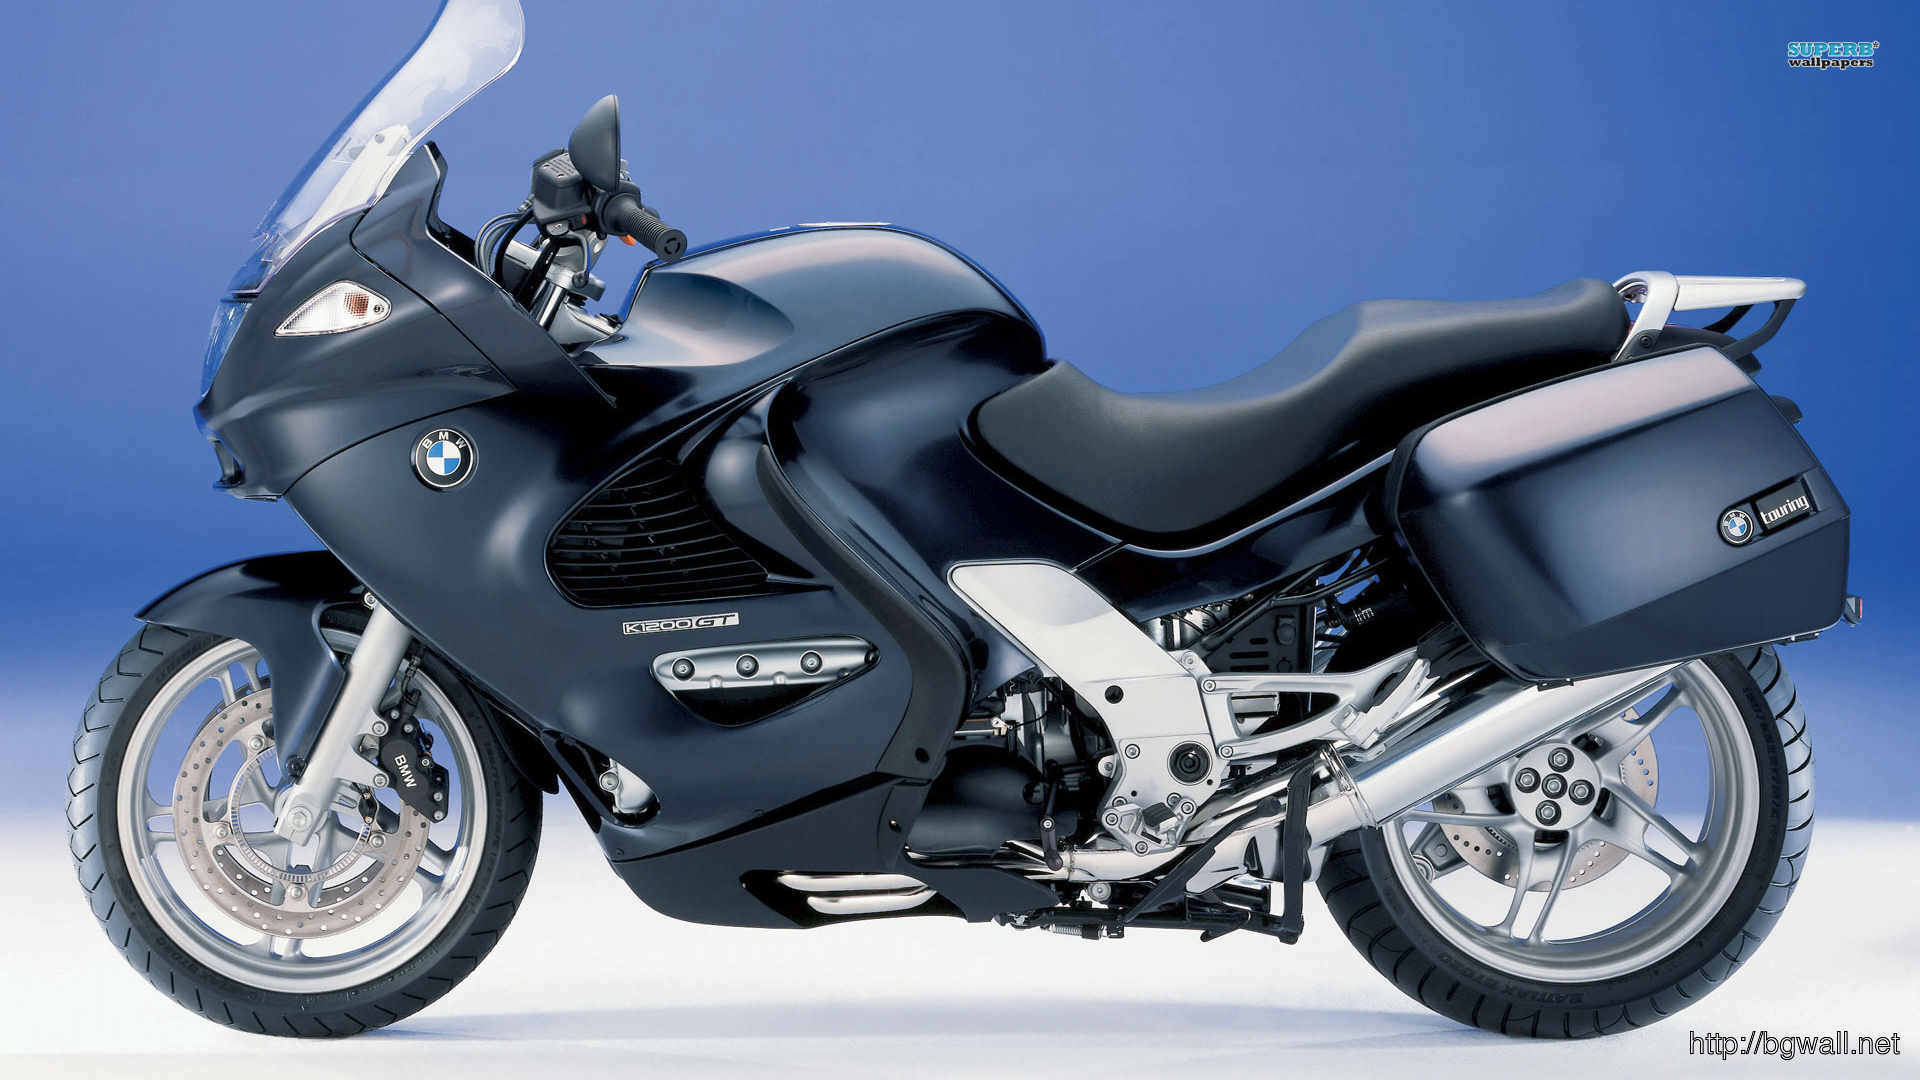 Bmw K1200gt Wallpaper Full Size